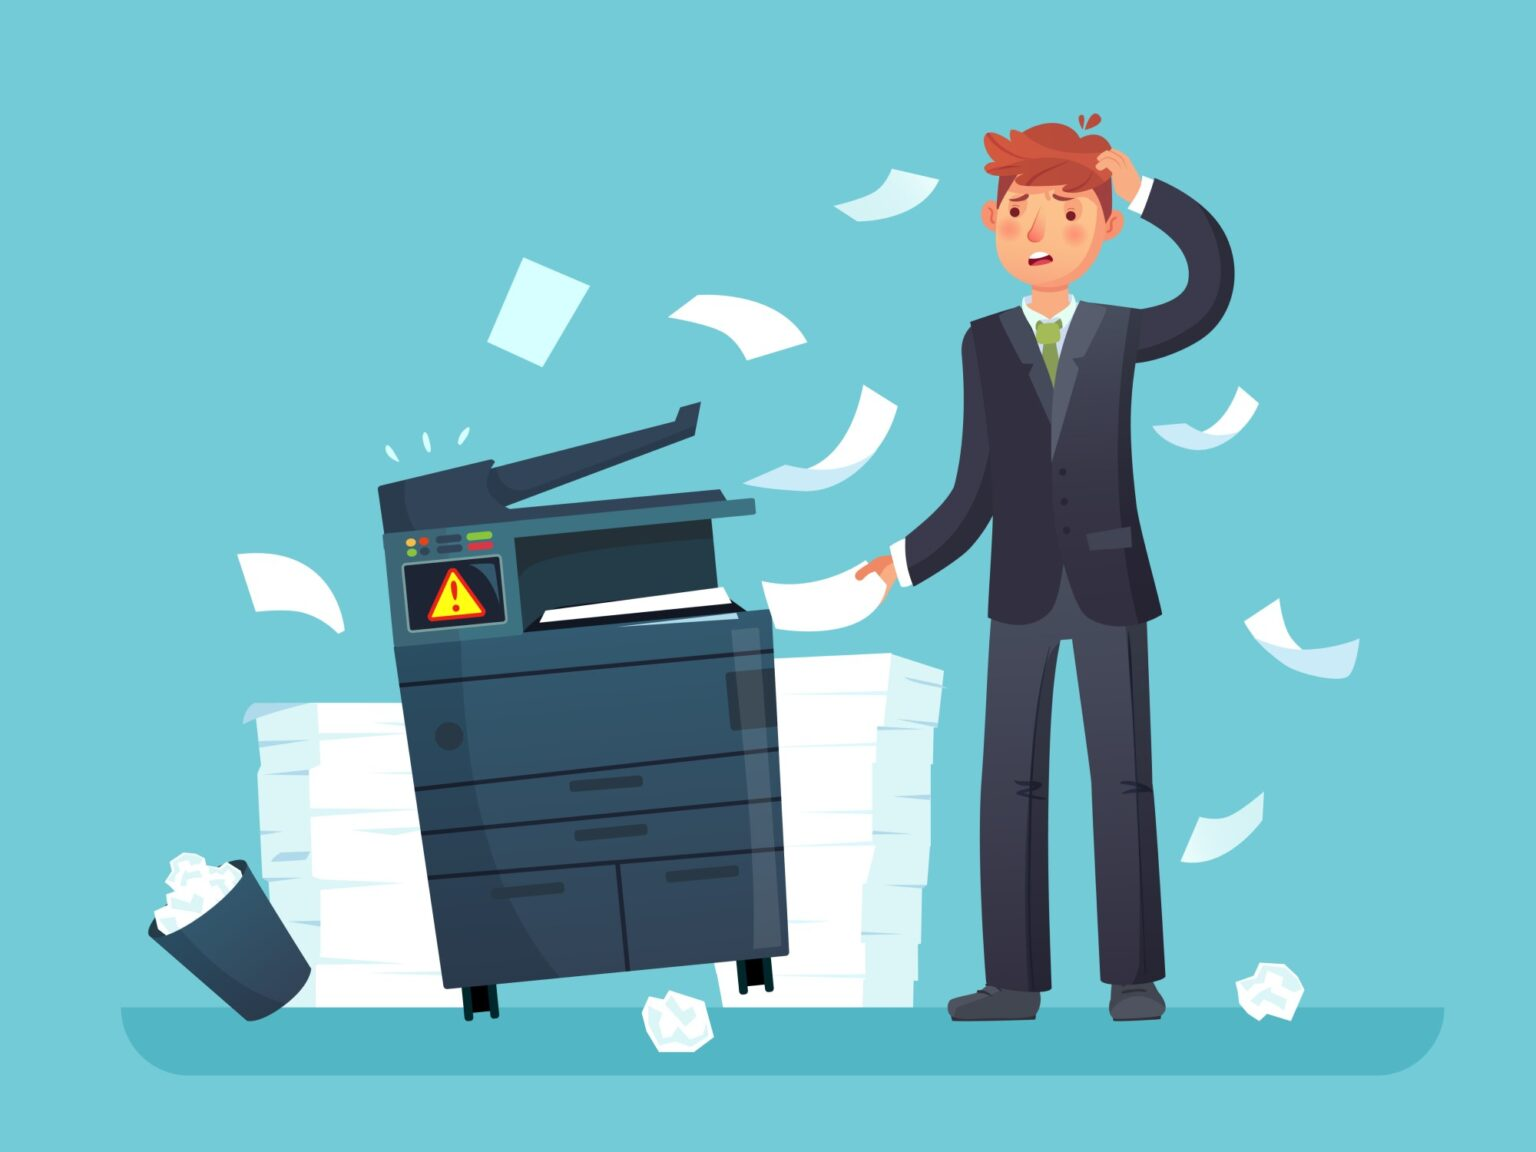 man standing in front of a malfunctioning printer and scanner as pages jam and fly out of the machine